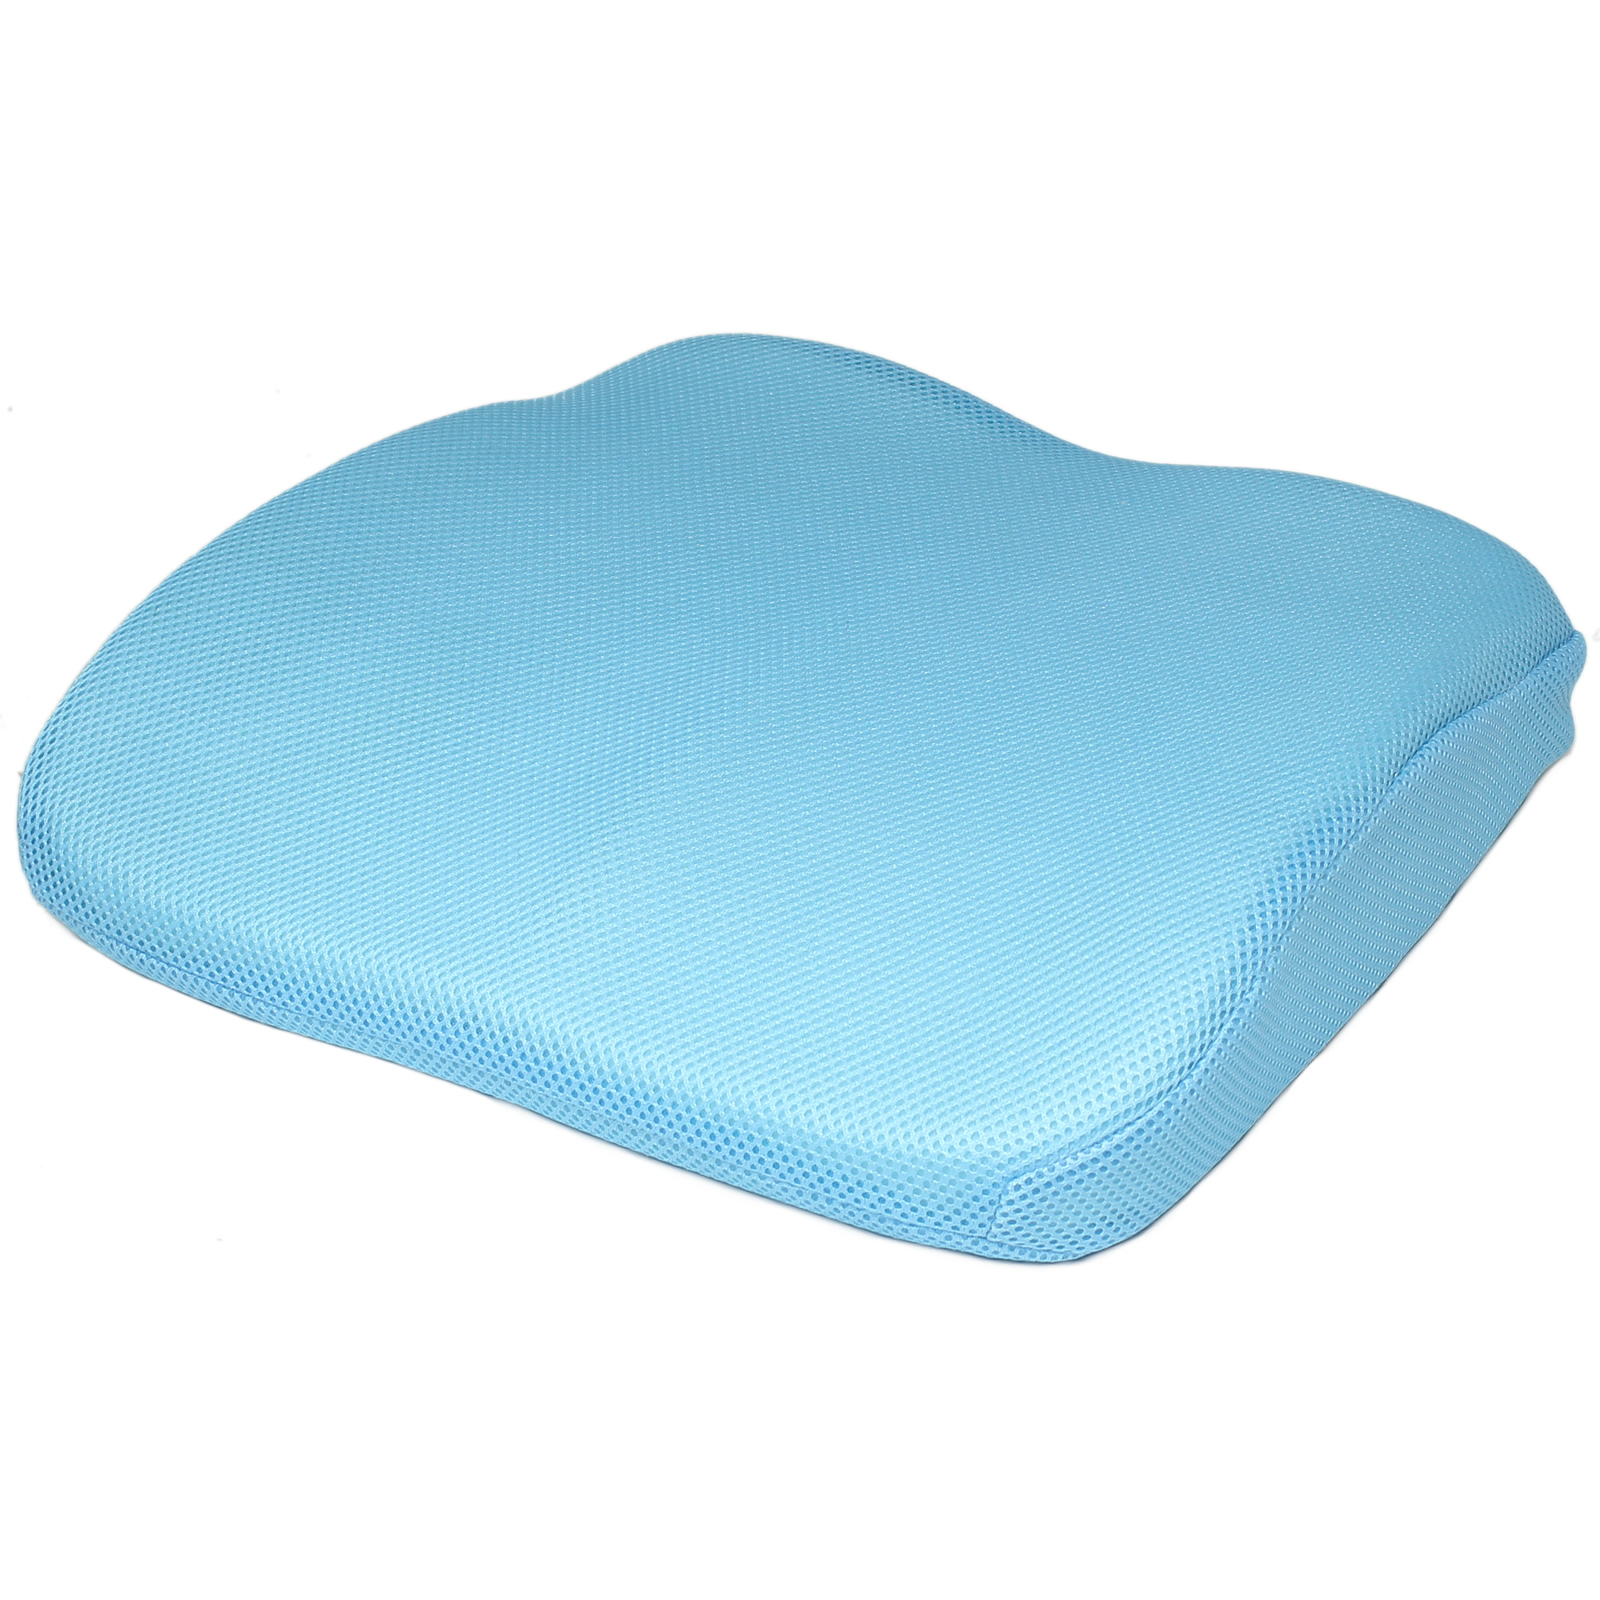 Lower Back Support For Office Chair 3d Mesh Memory Foam Seat Cushion Lower Back Lumbar Support